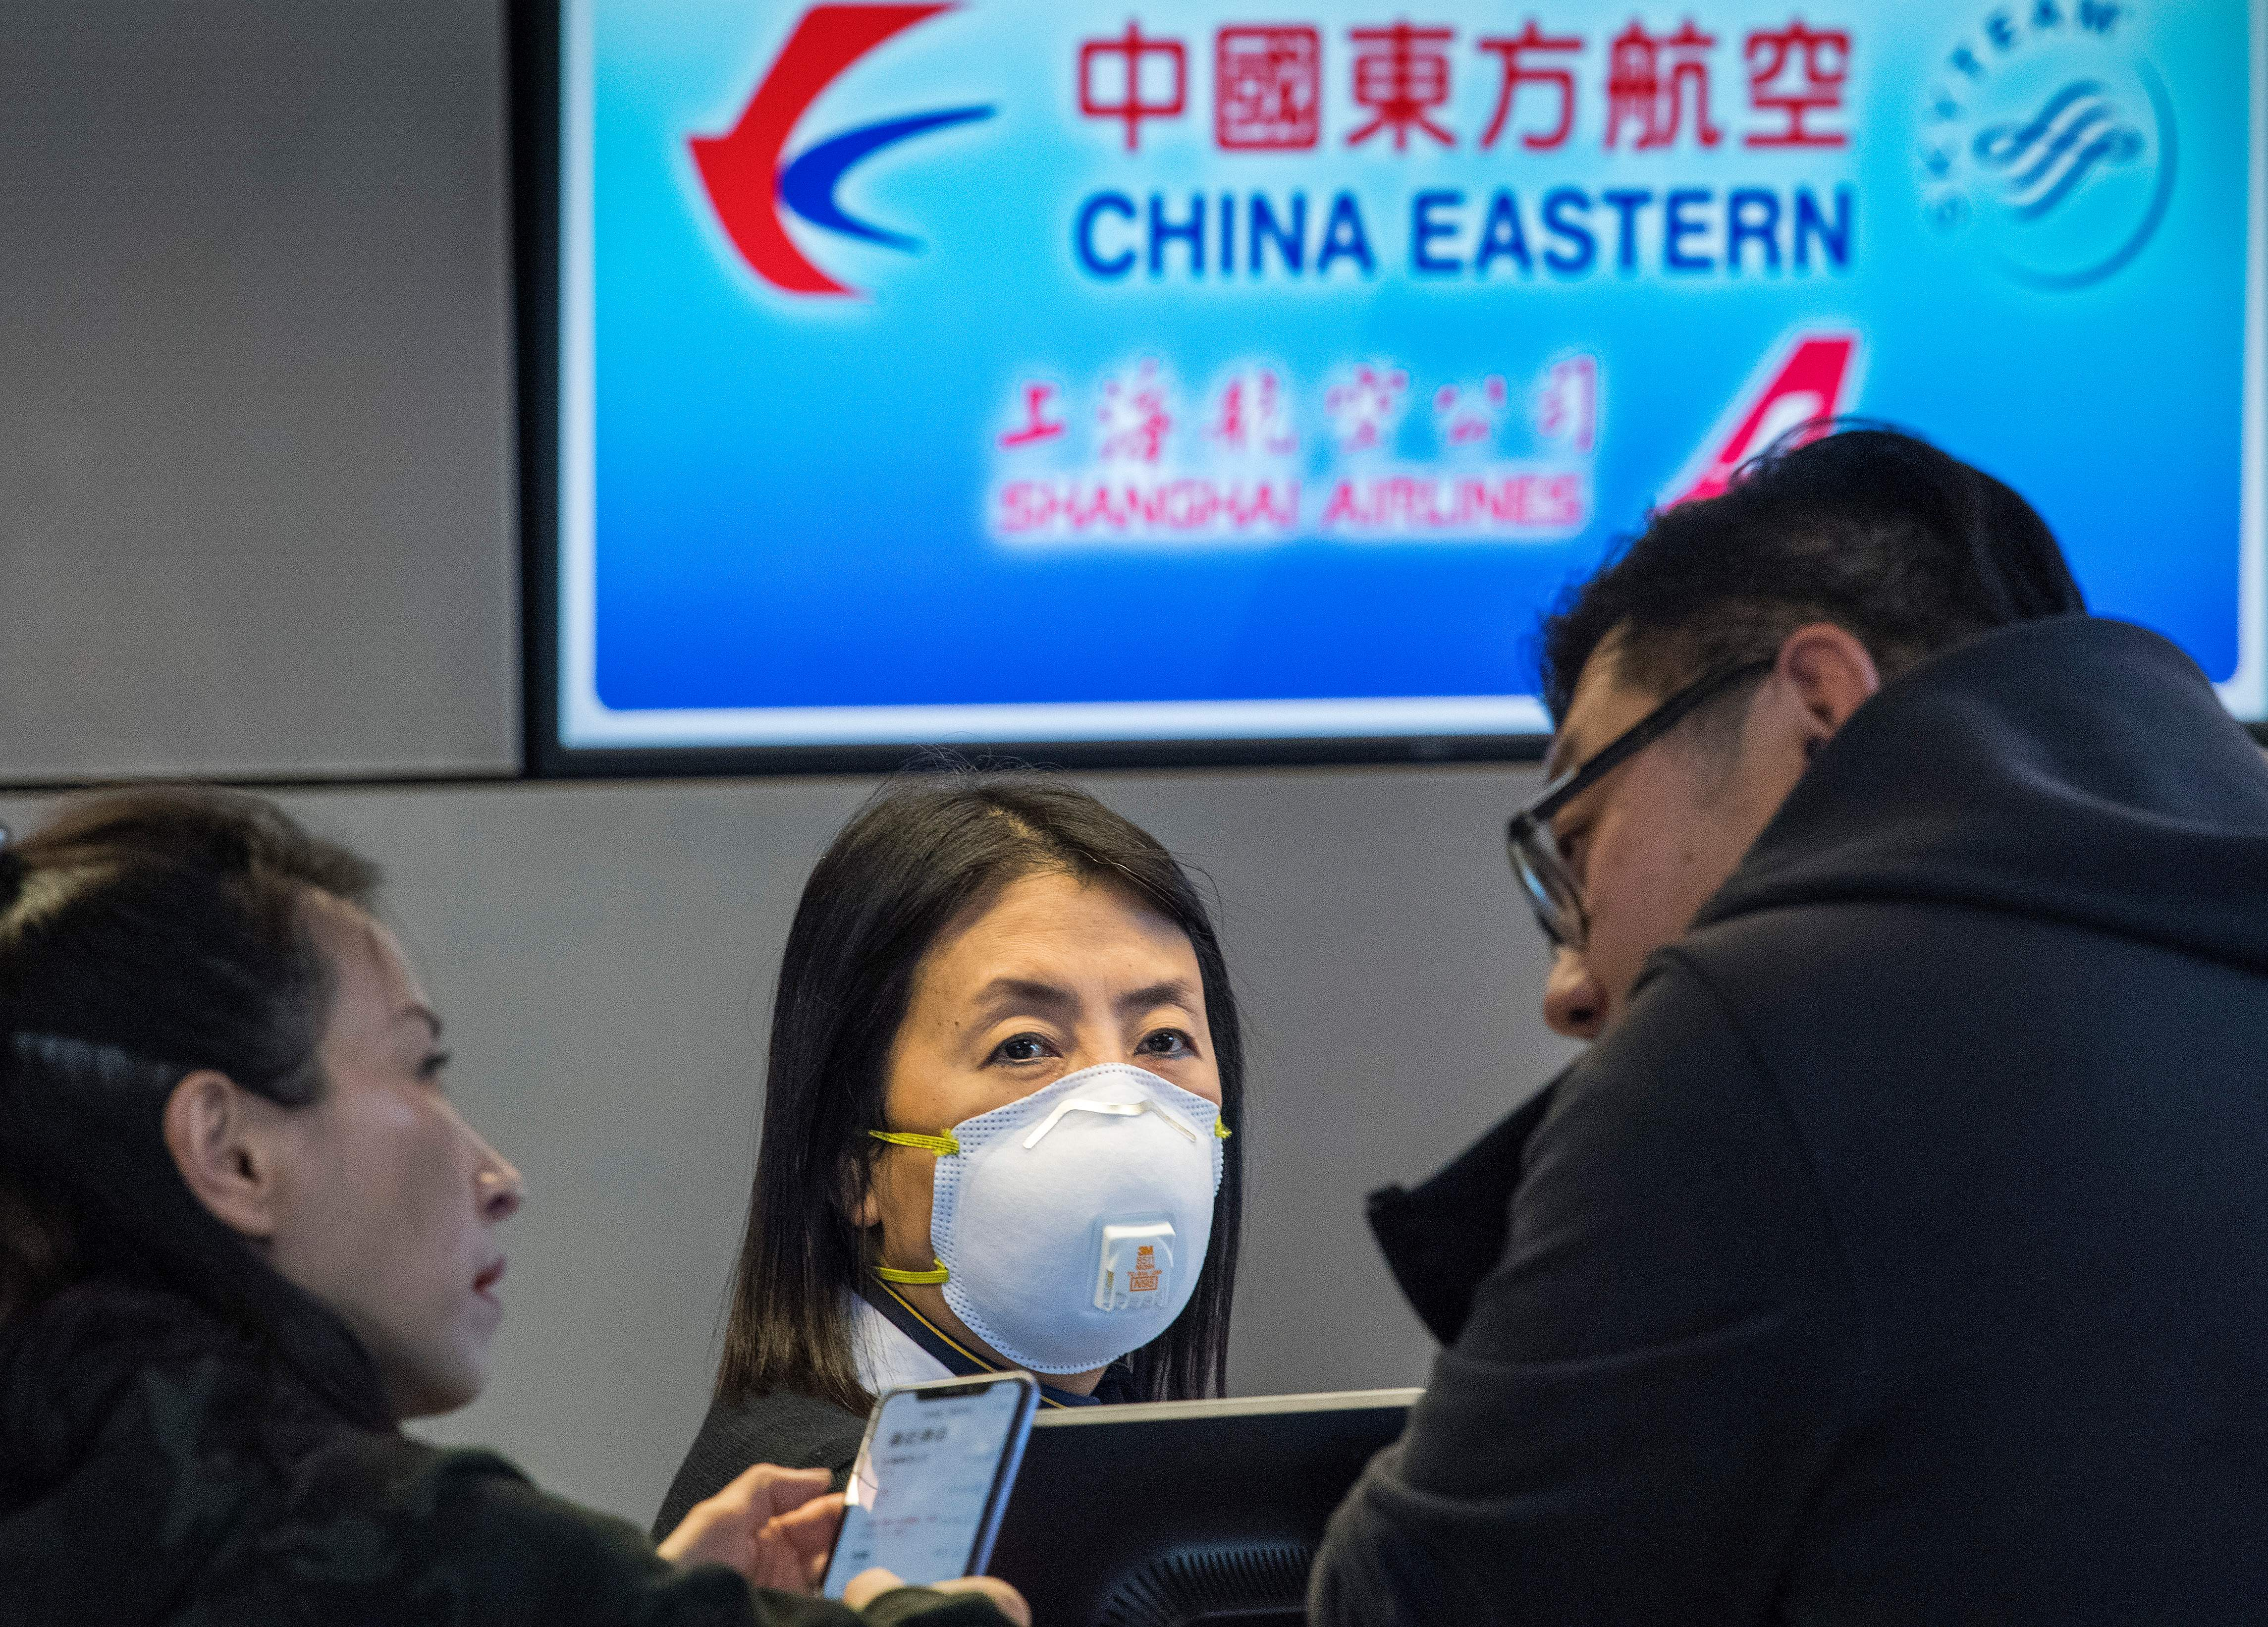 Passengers wait for standby tickets on a China Eastern flight to Shanghai, at Los Angeles International Airport on Sunday.